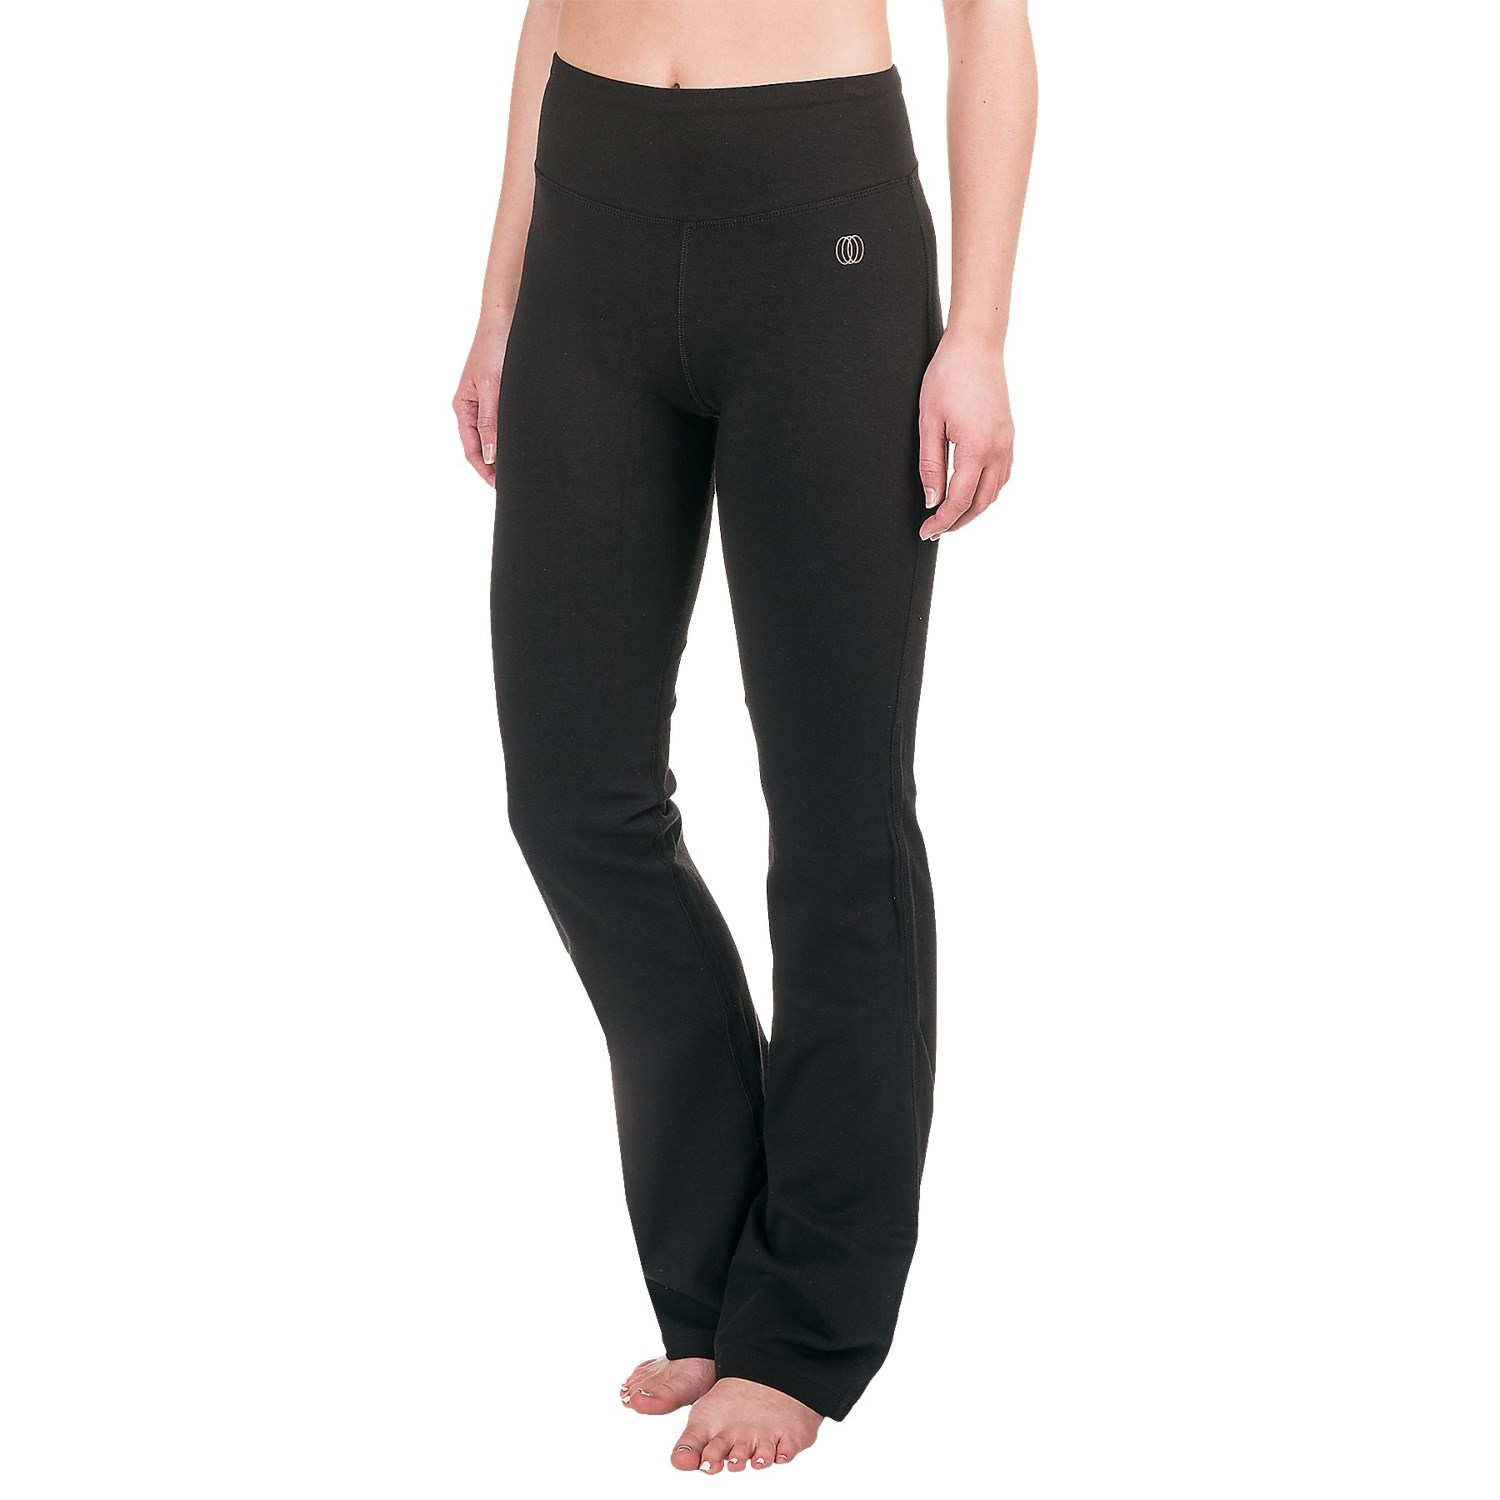 The Balance Collection Womens Plus Yoga Fitness Athletic Leggings Average rating: 0 out of 5 stars, based on 0 reviews Write a review This button opens a dialog that displays additional images for this product with the option to zoom in or out.